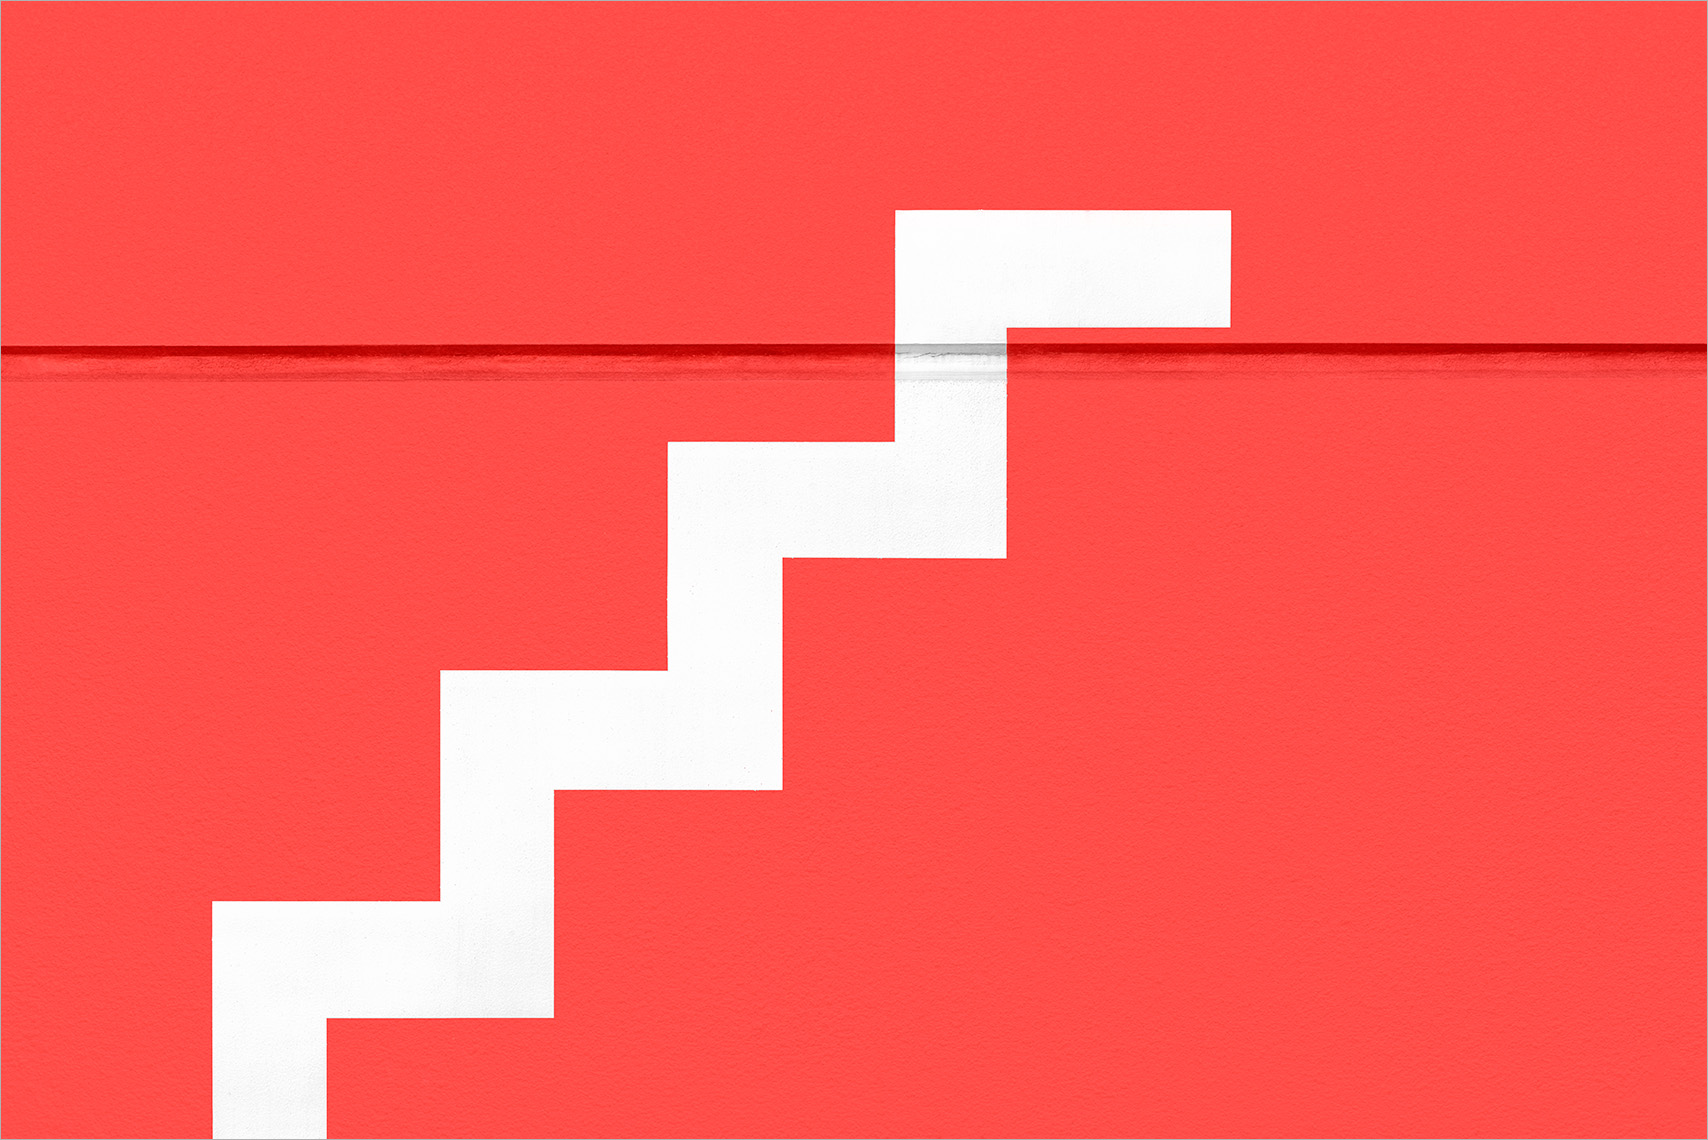 Zoe Wetherall / Architecture / Red Stair